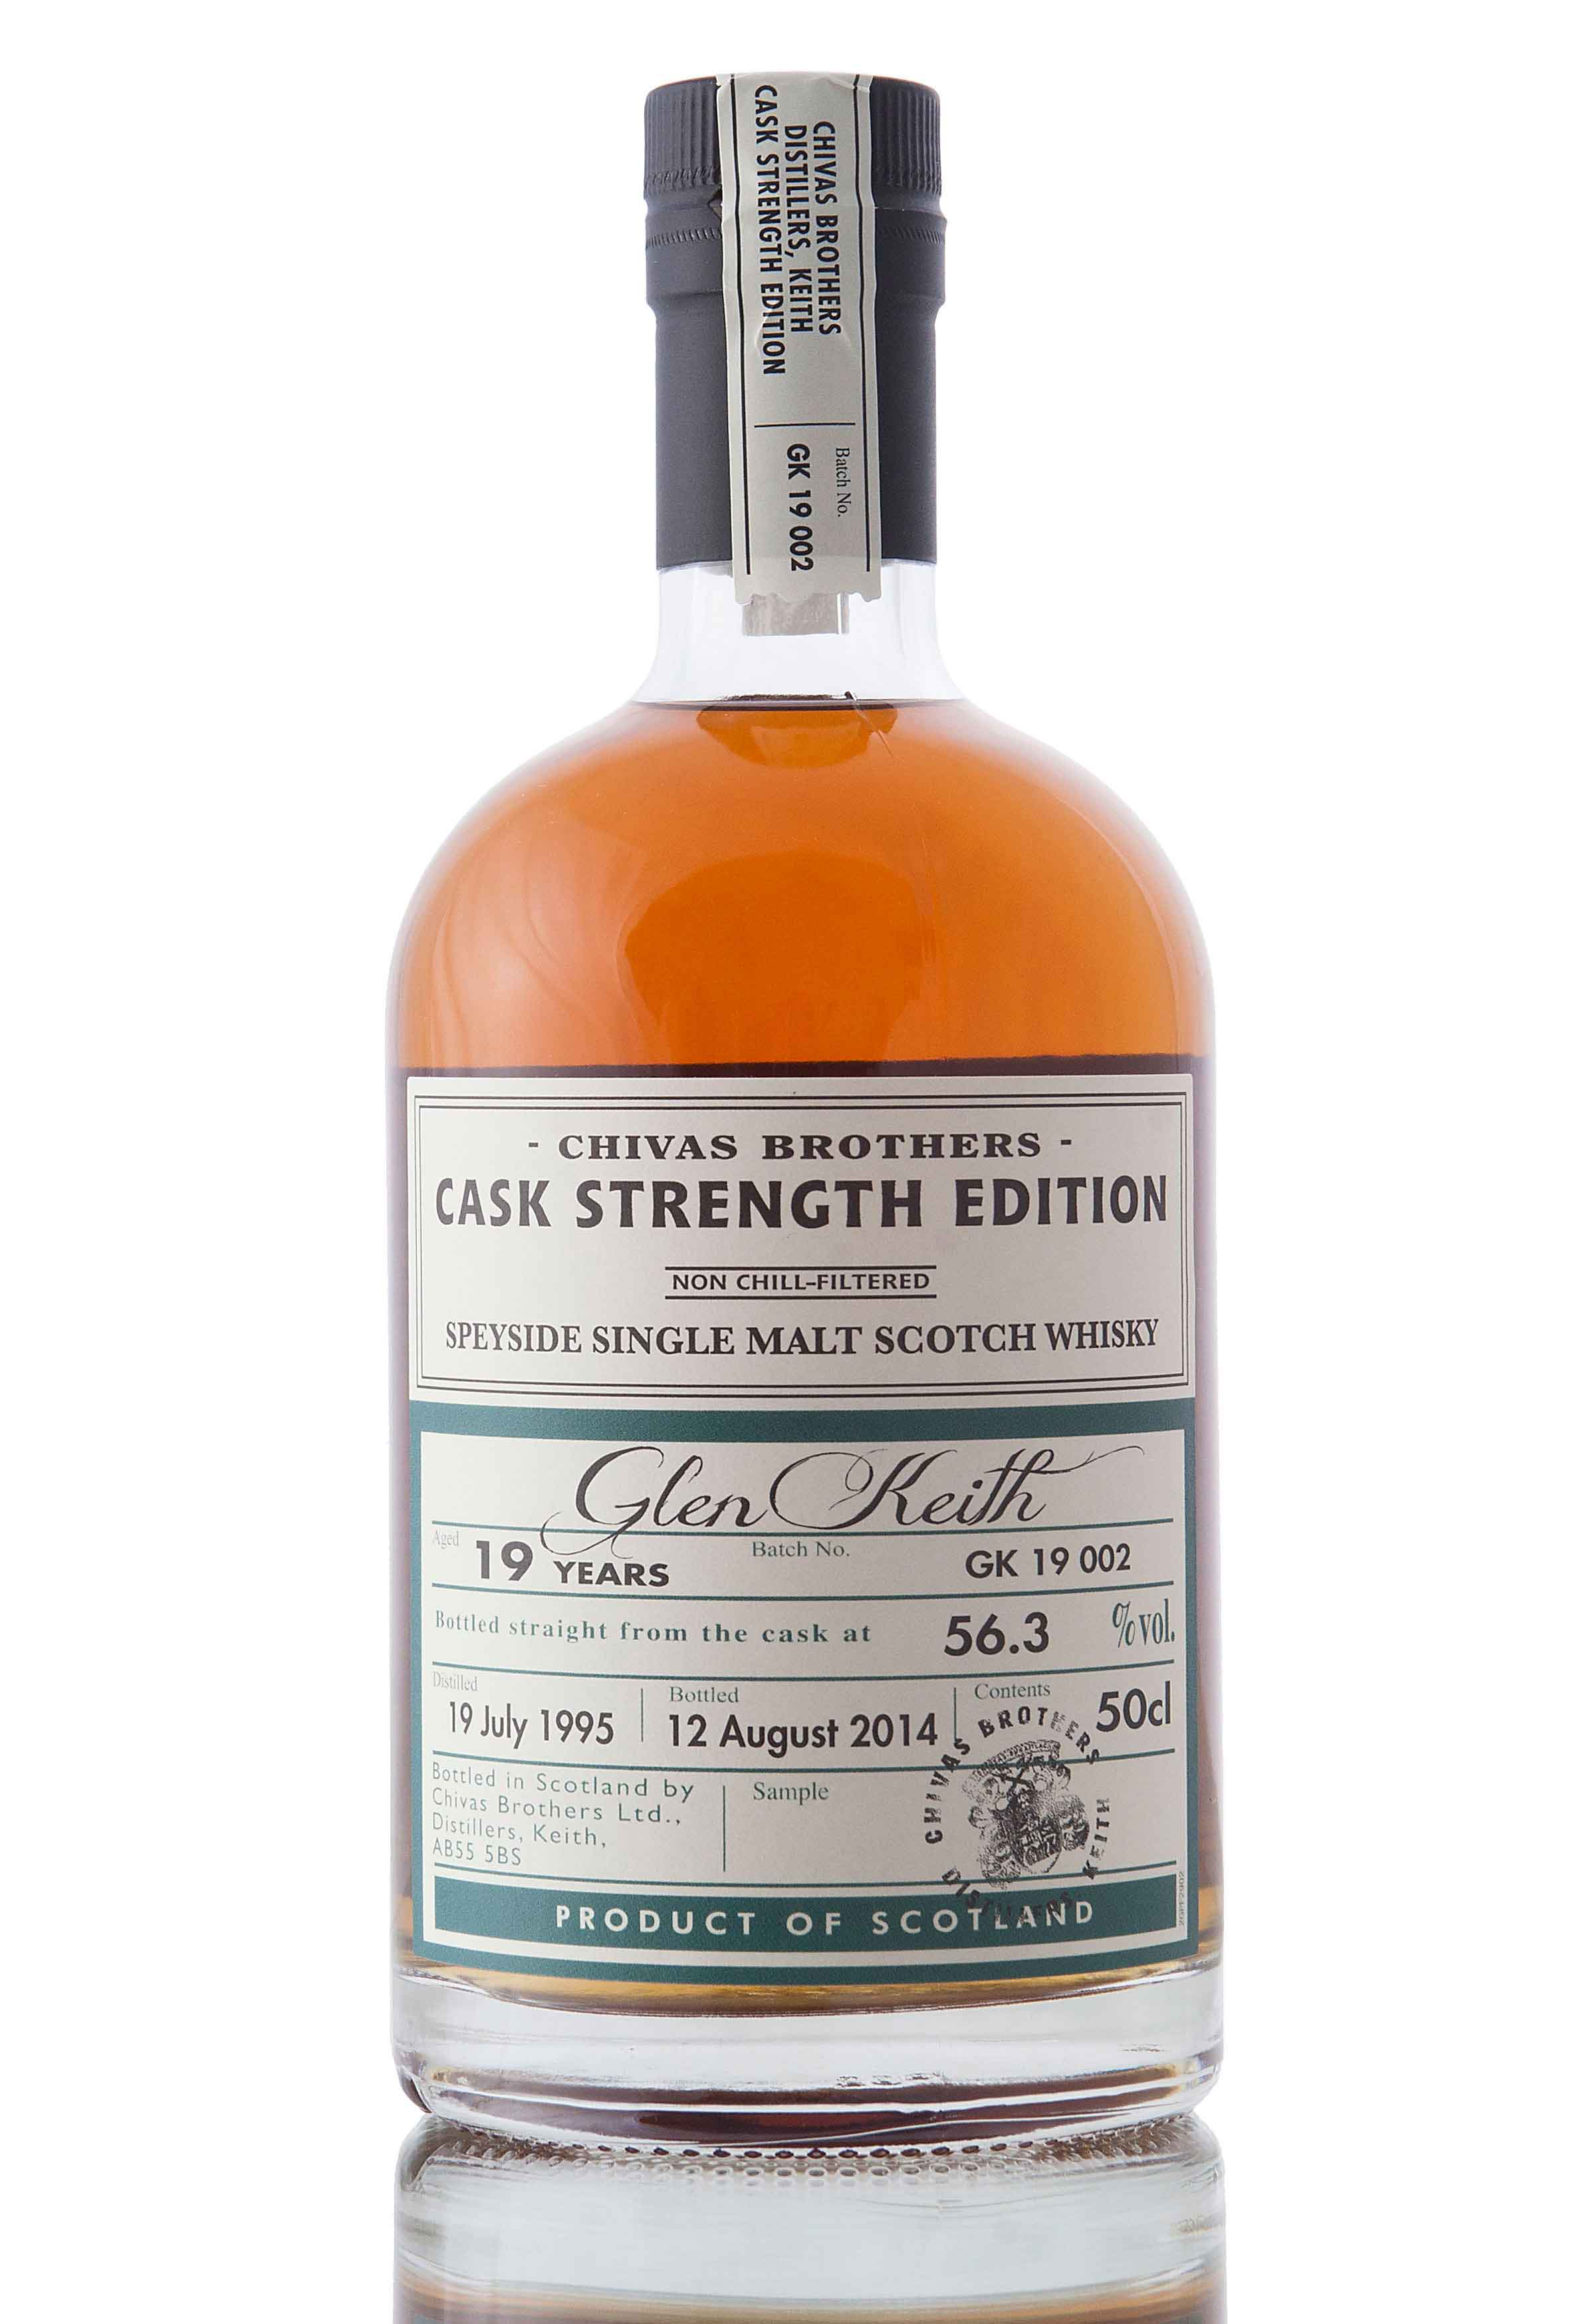 Glen Keith 19 Year Old - 1995 / Cask Strength Edition